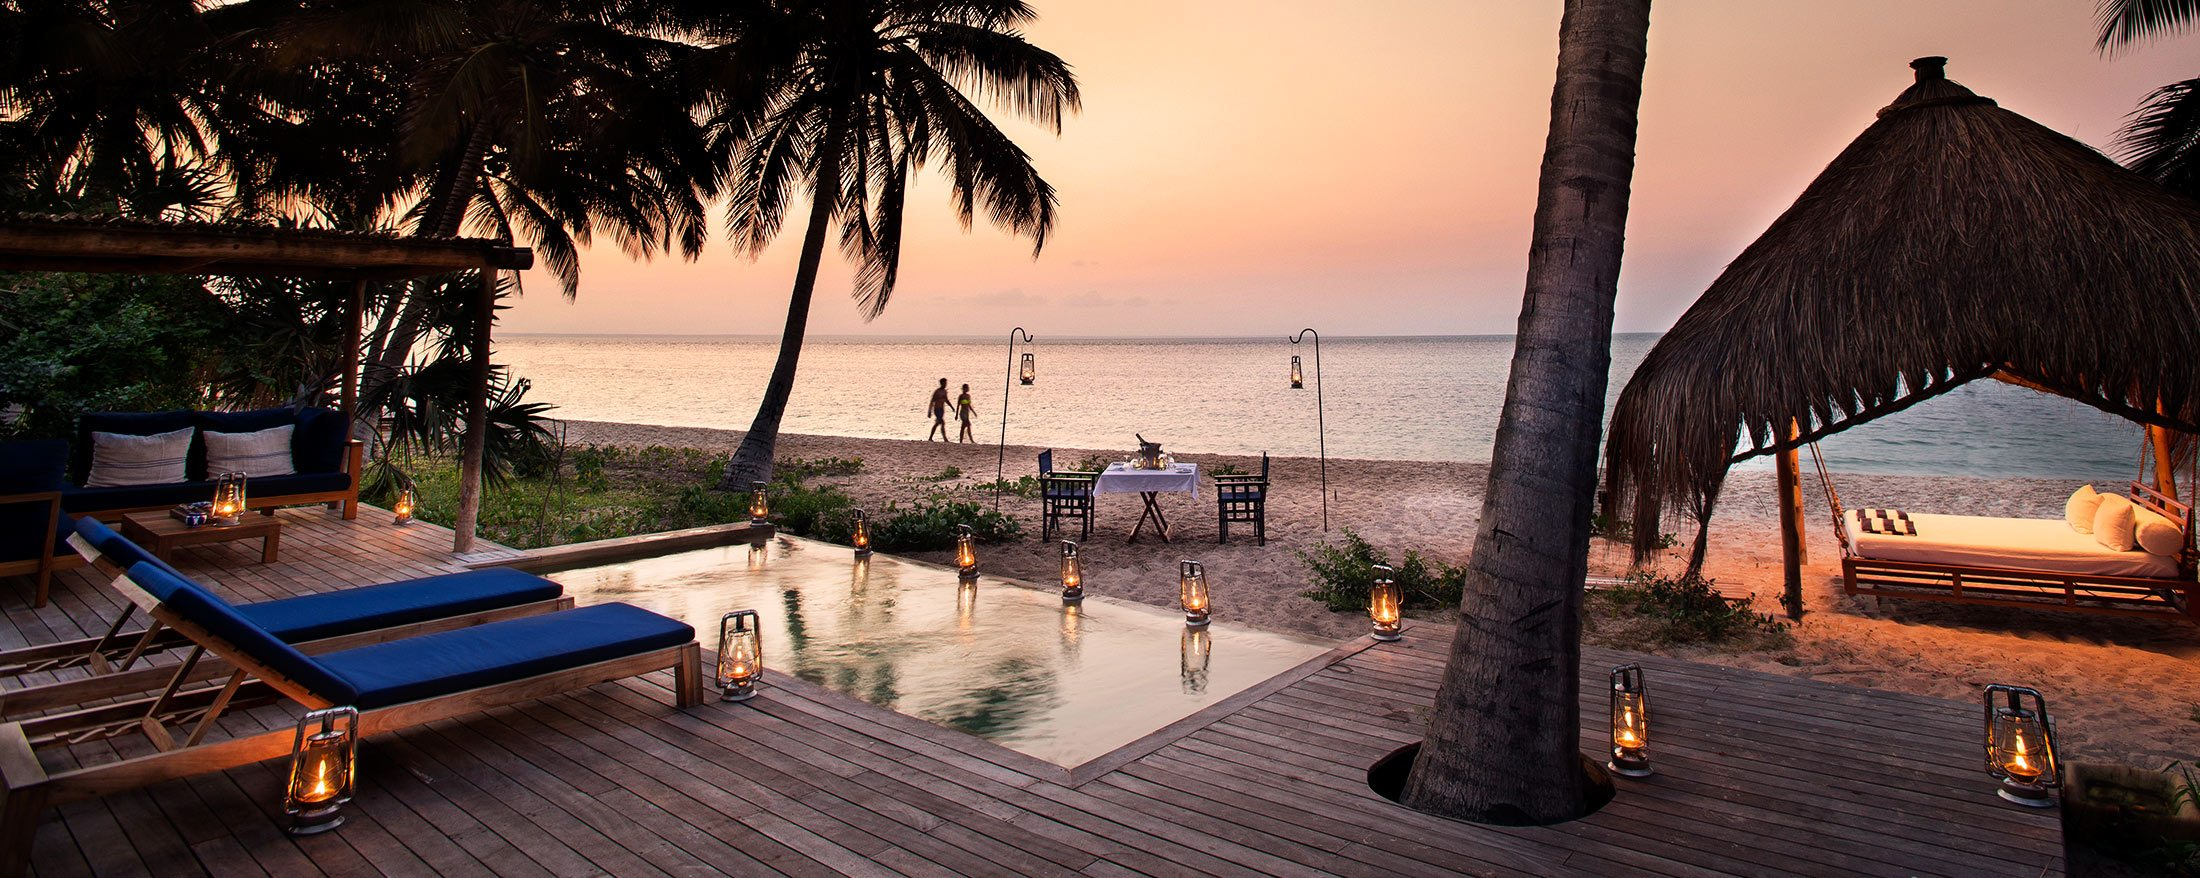 Benguerra Island Lodge's rooms come with private plunge pools.